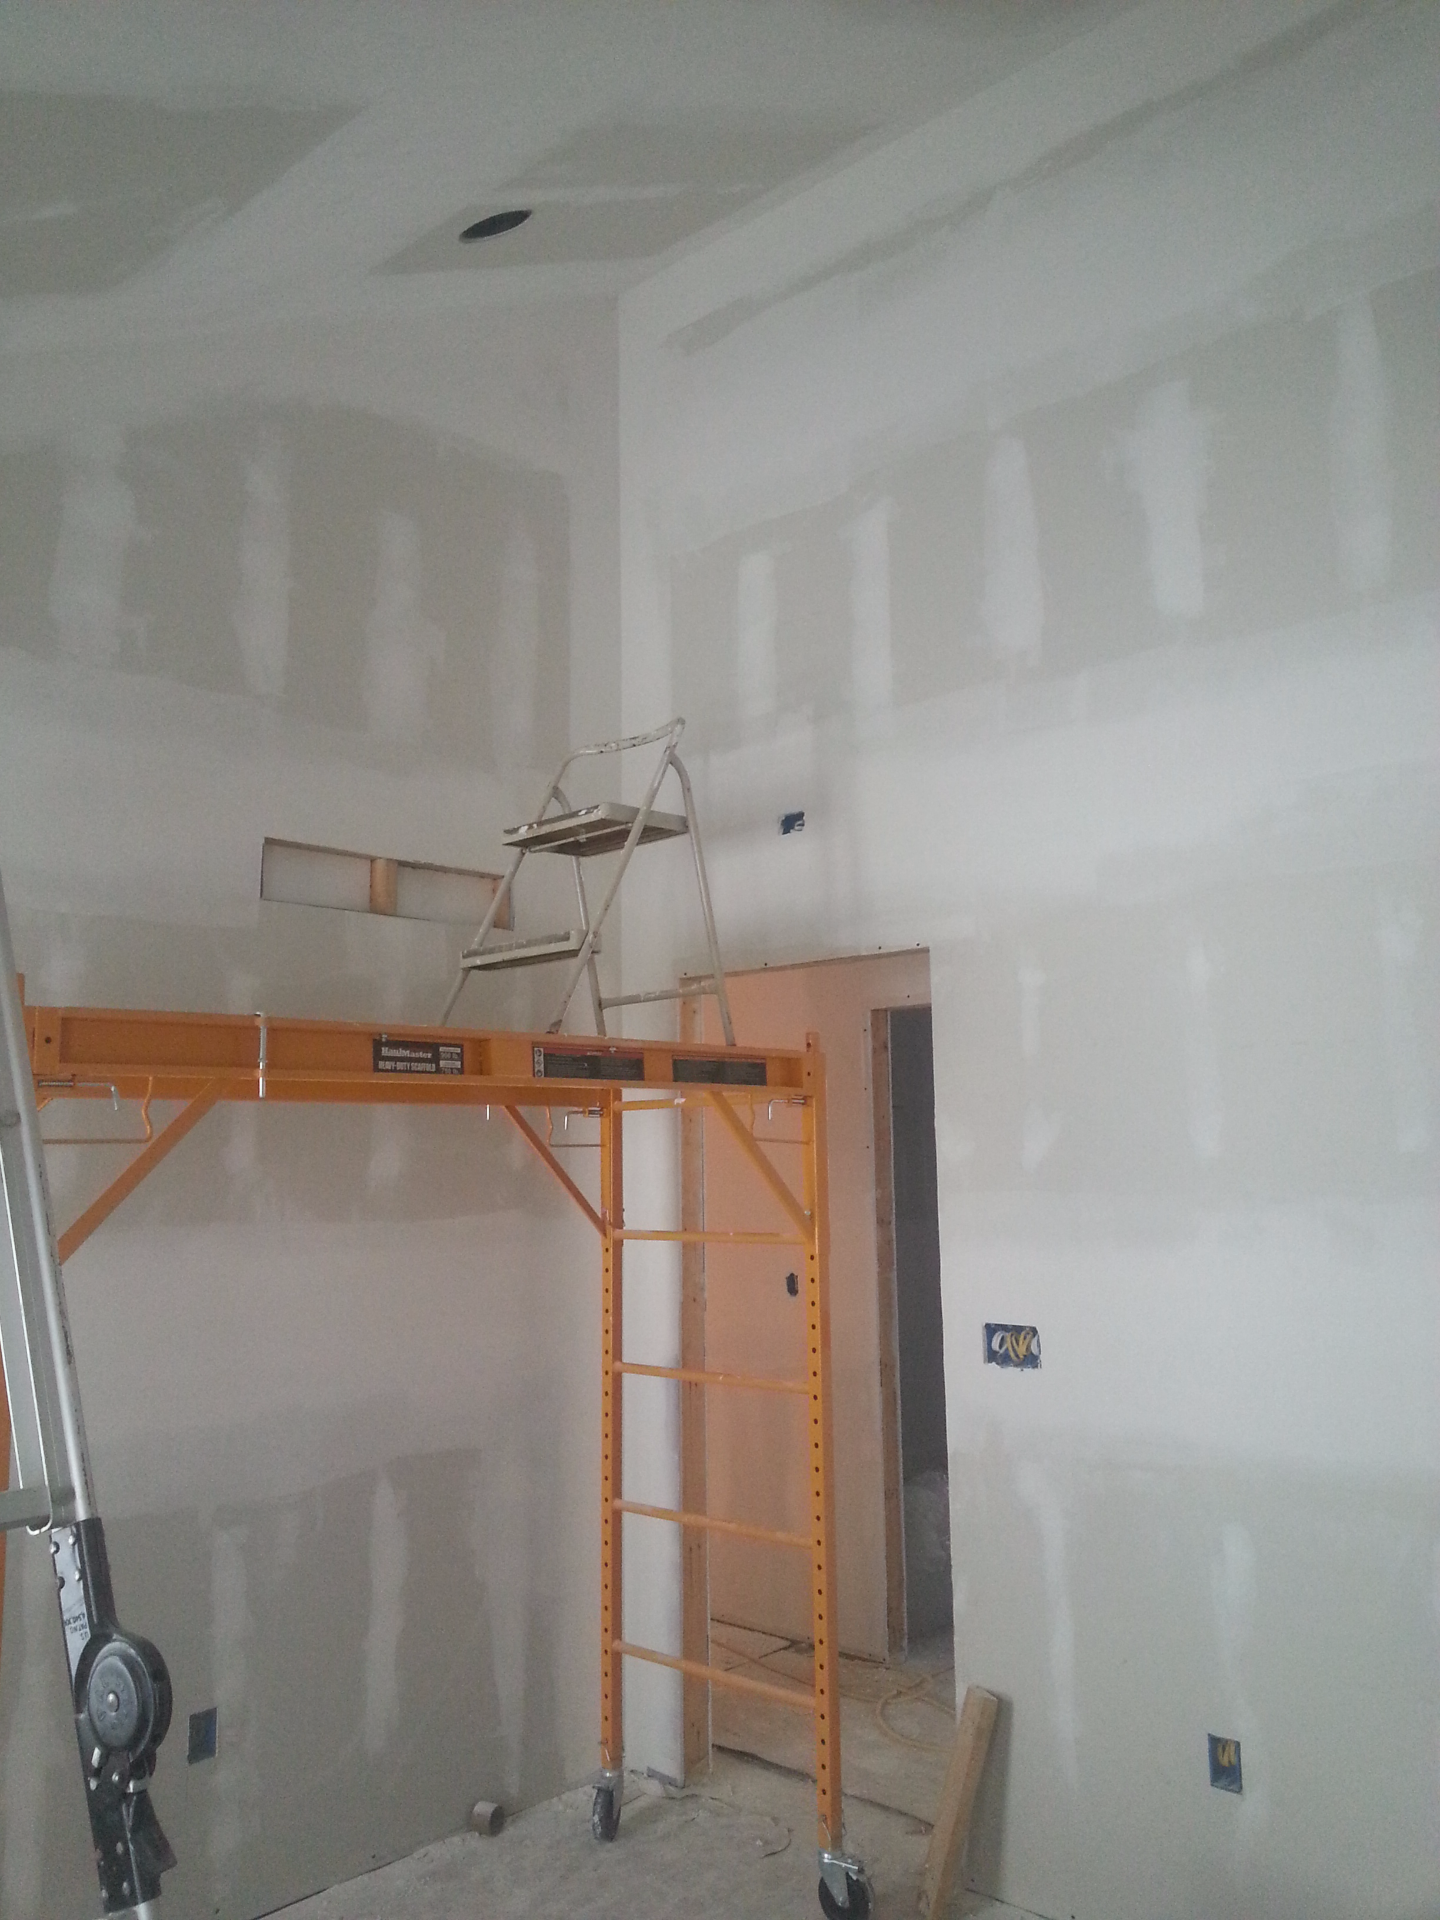 Dry-wall in the master bedroom